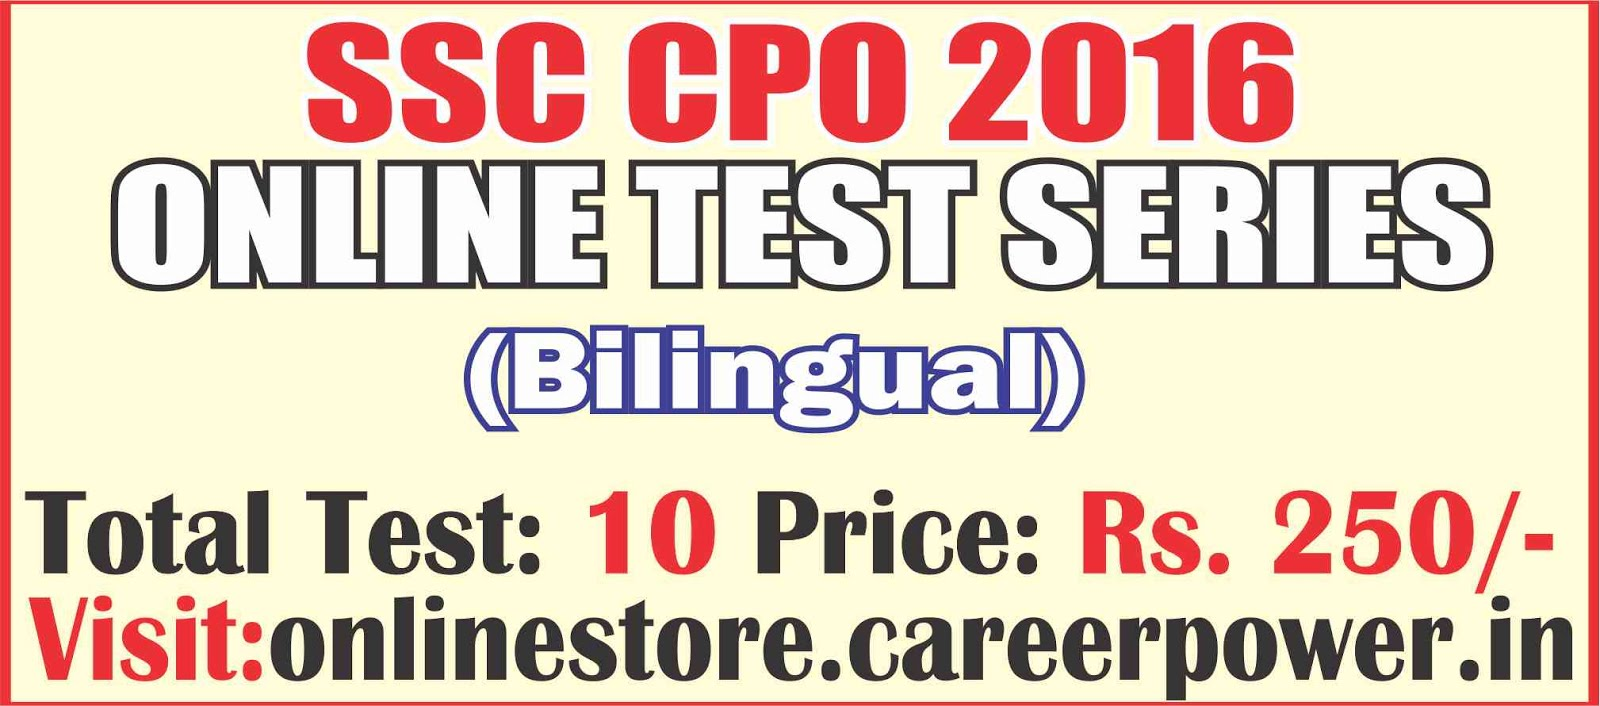 SSC CPO 2016 ONLINE TEST SERIES